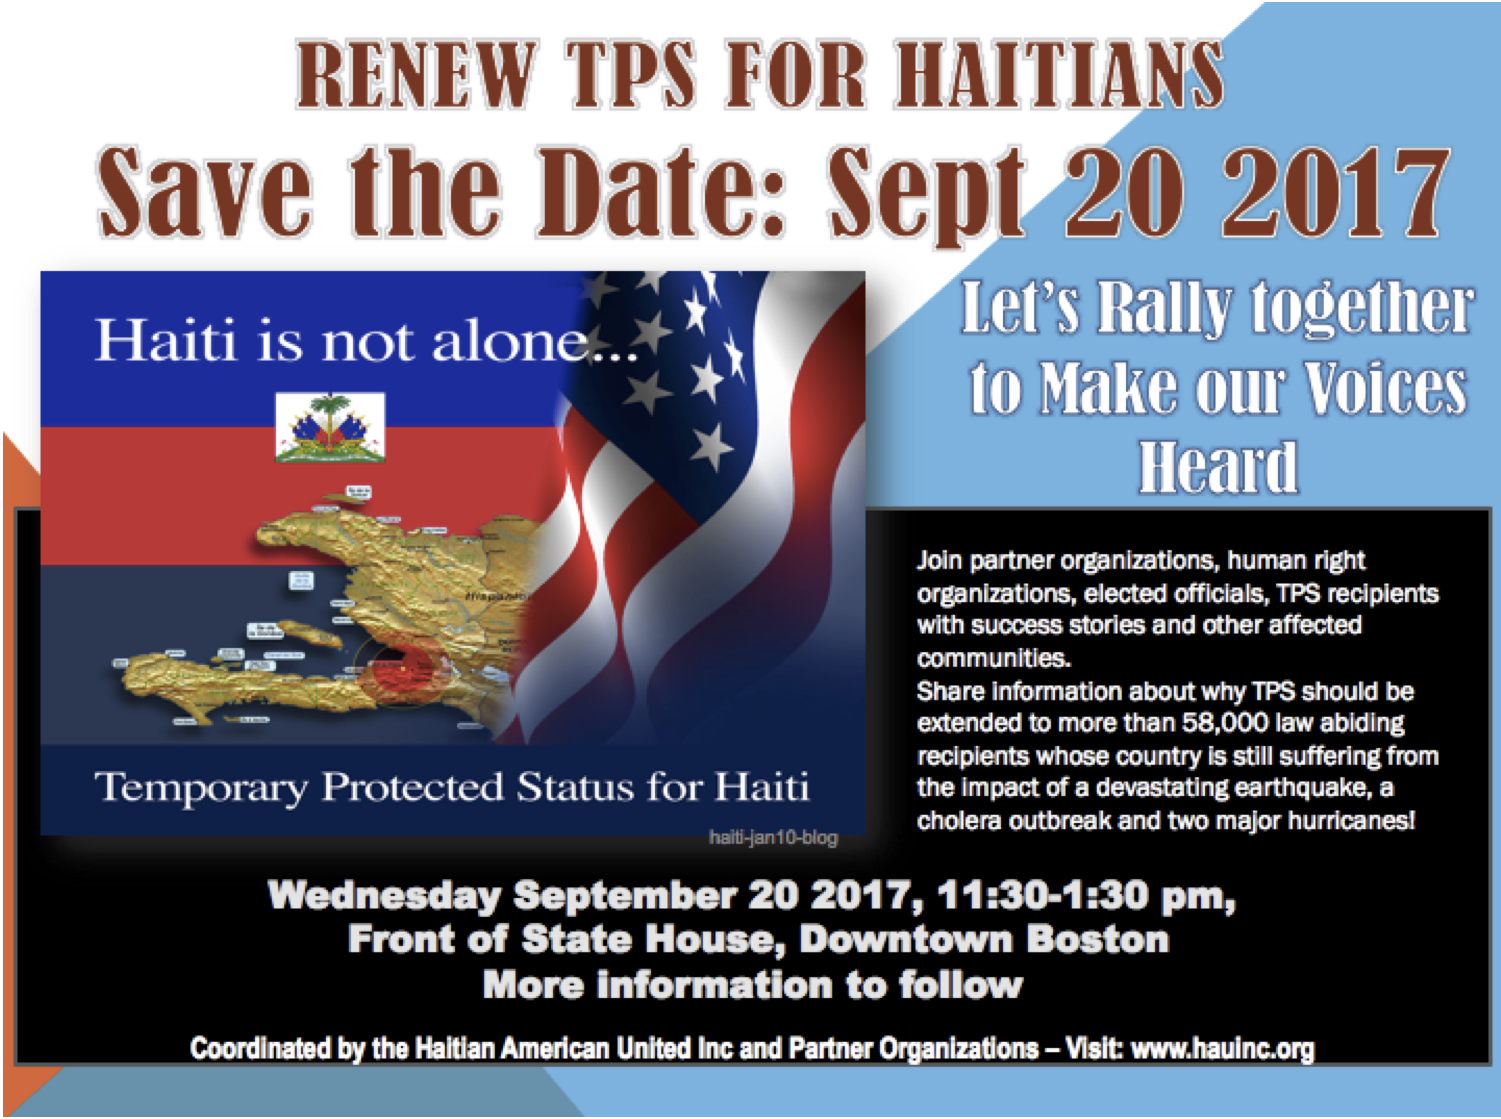 BostonTPSRally_SAVE THE DATE -TPS RALLY